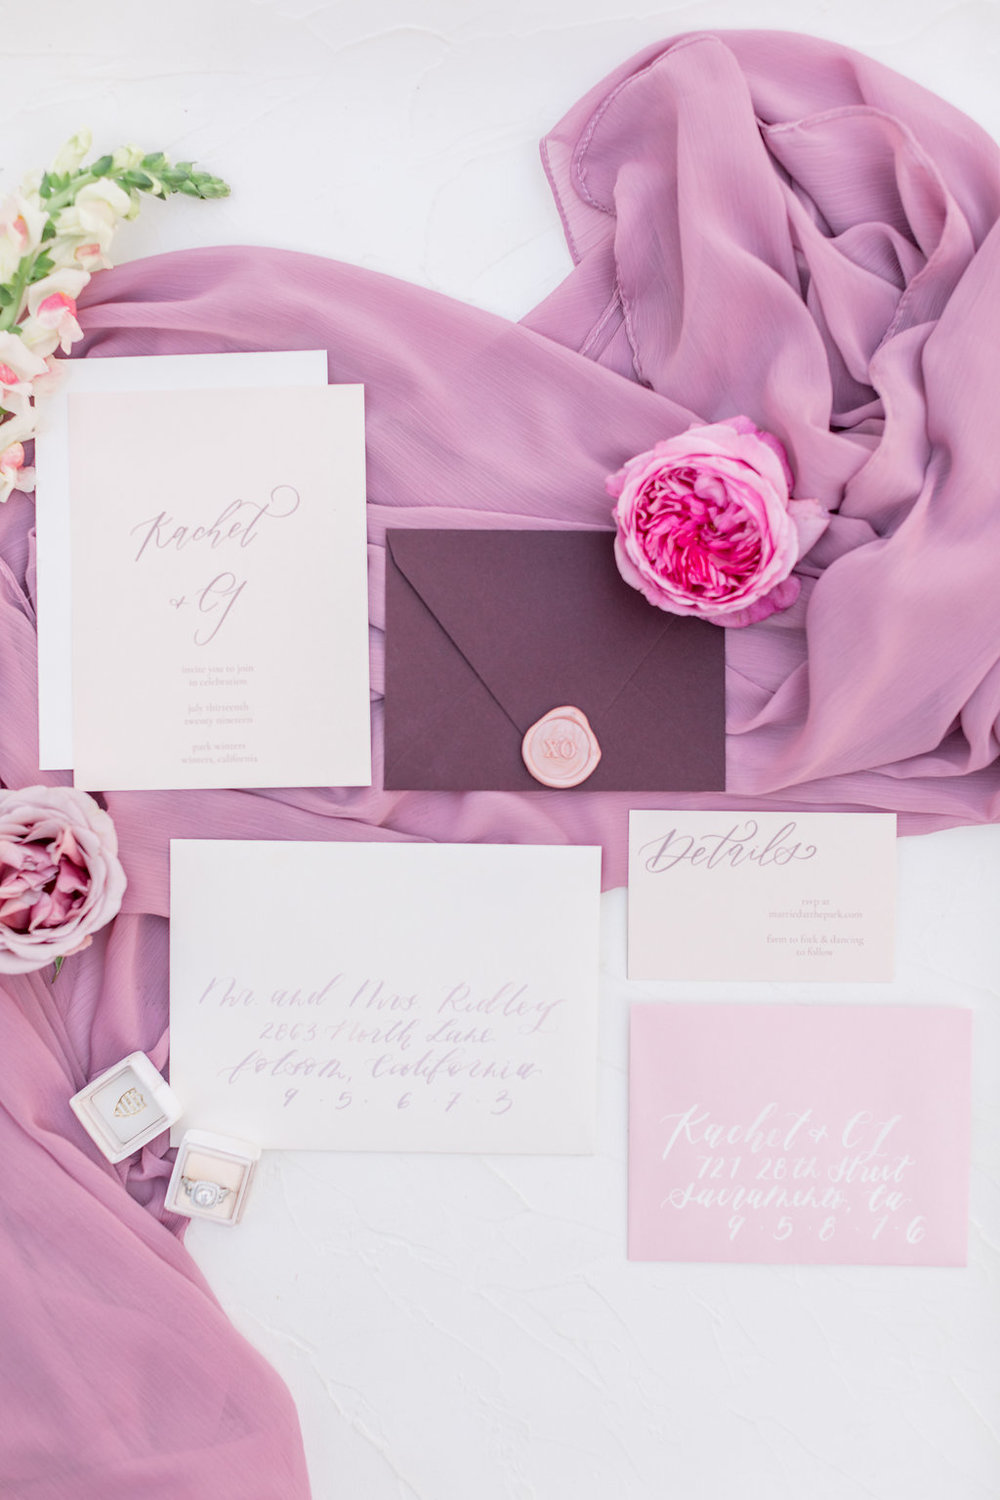 Wedding Invitations Calligraphy Ideas and Fuschia Pink Flatlay inspo